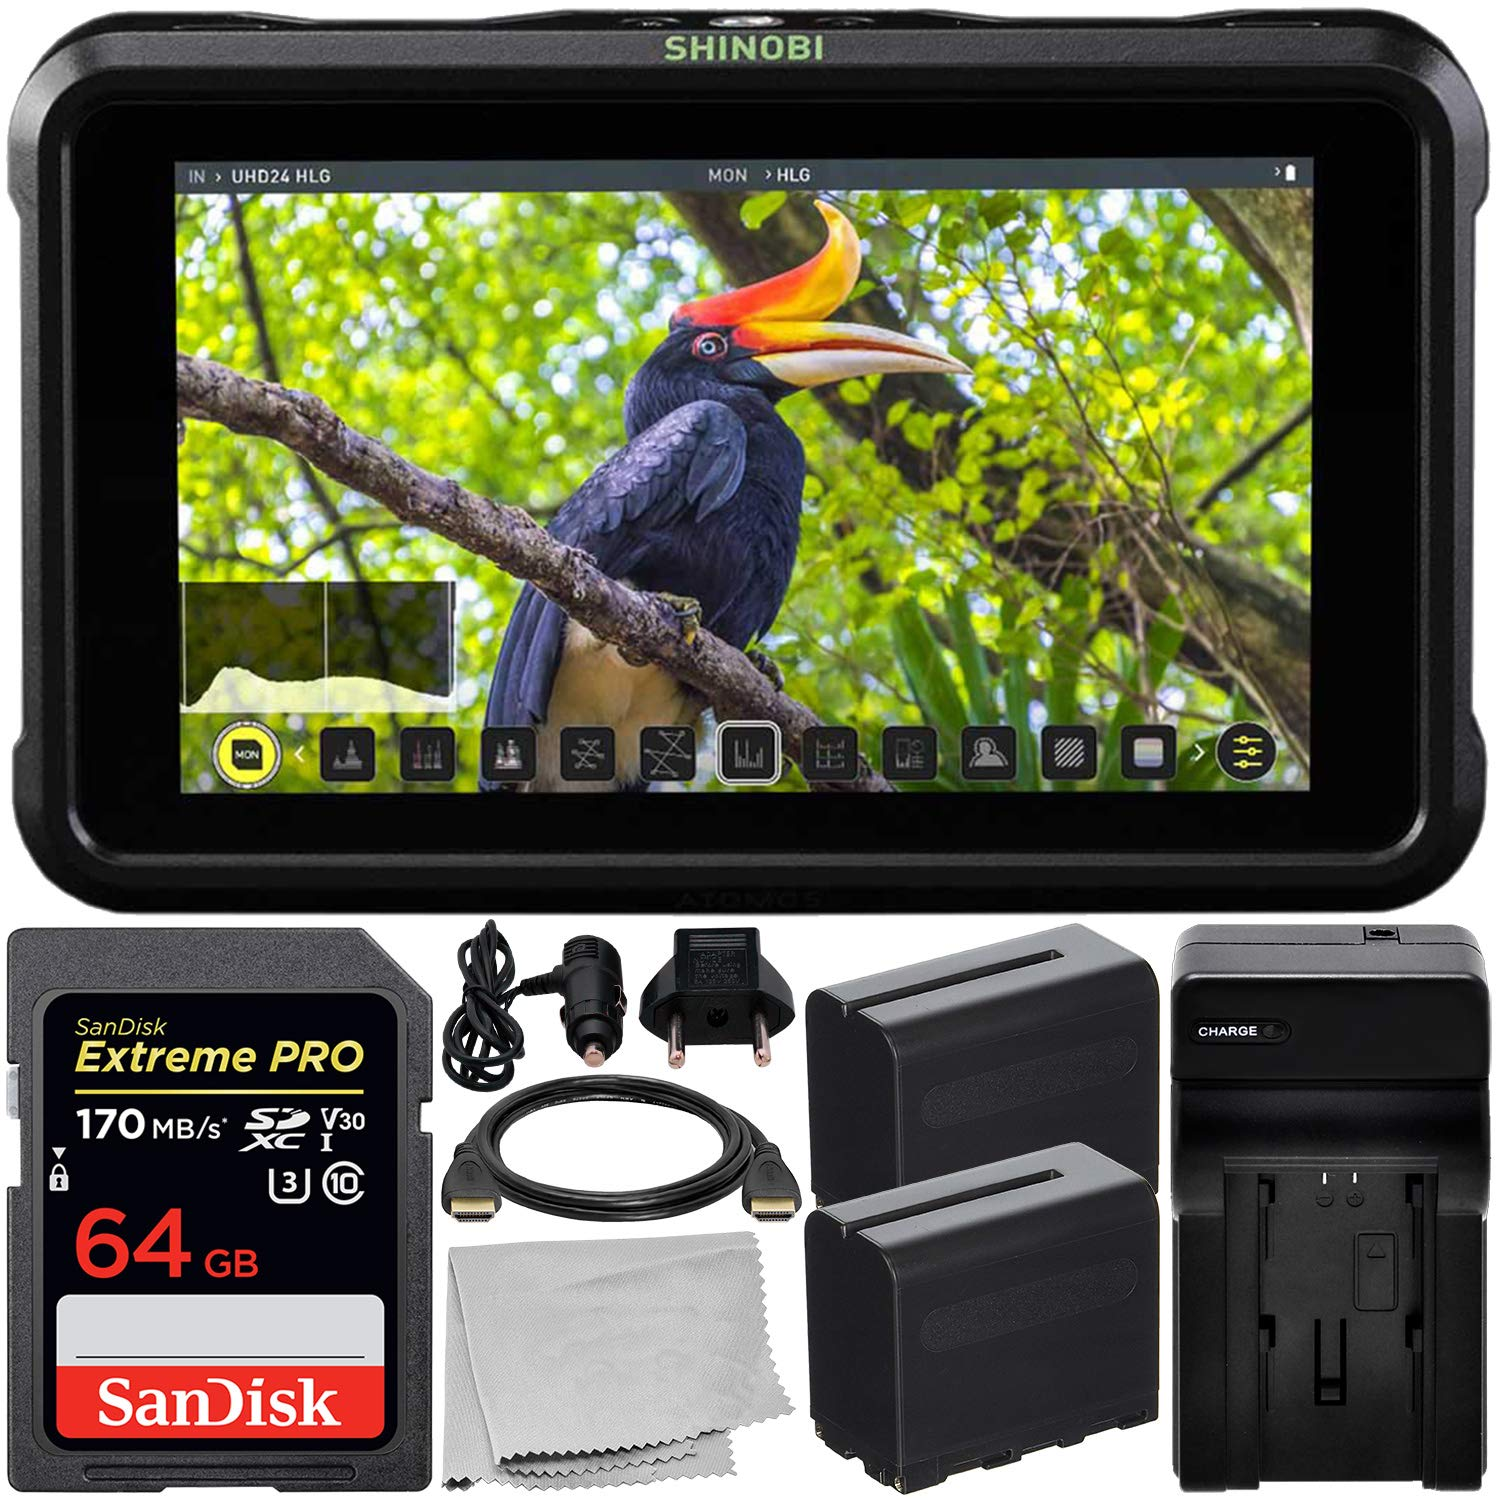 """Atomos Shinobi 5.2"""" 4K HDMI Monitor with Essential Accessory Bundle – Includes: SanDisk Extreme PRO 64GB SDXC Memory Card + 2x Extended Life NP-F970 L-Series Batteries with Charger + HDMI Cable + MORE"""